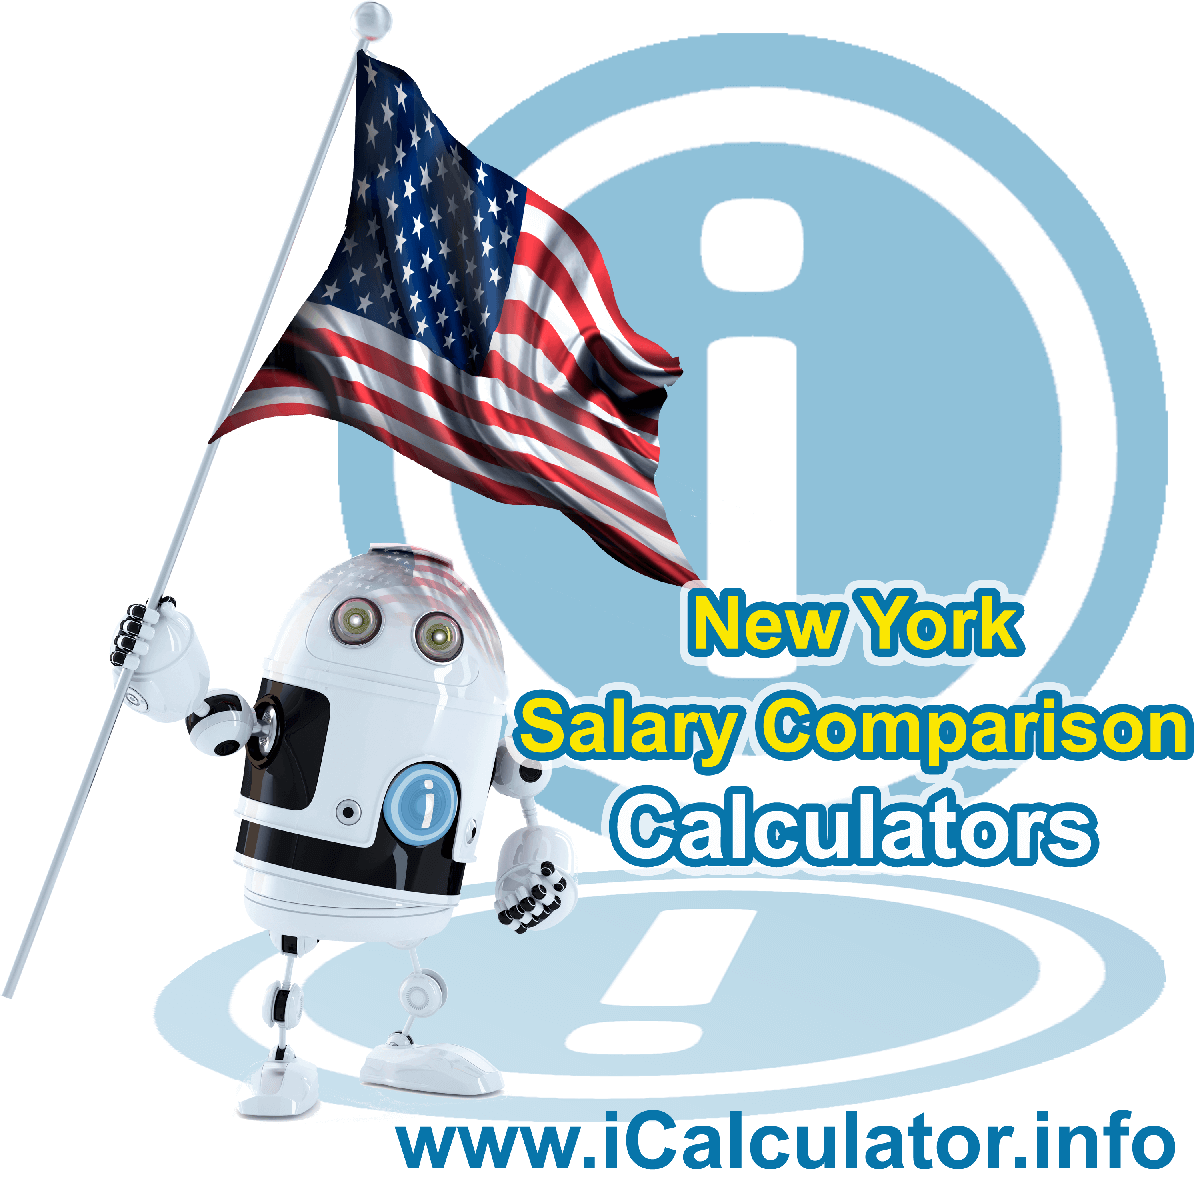 New York Salary Comparison Calculator 2020 | iCalculator | The New York Salary Comparison Calculator allows you to quickly calculate and compare upto 6 salaries in New York or between other states for the 2020 tax year and historical tax years. Its an excellent tool for jobseekers, pay raise comparison and comparison of salaries between different US States